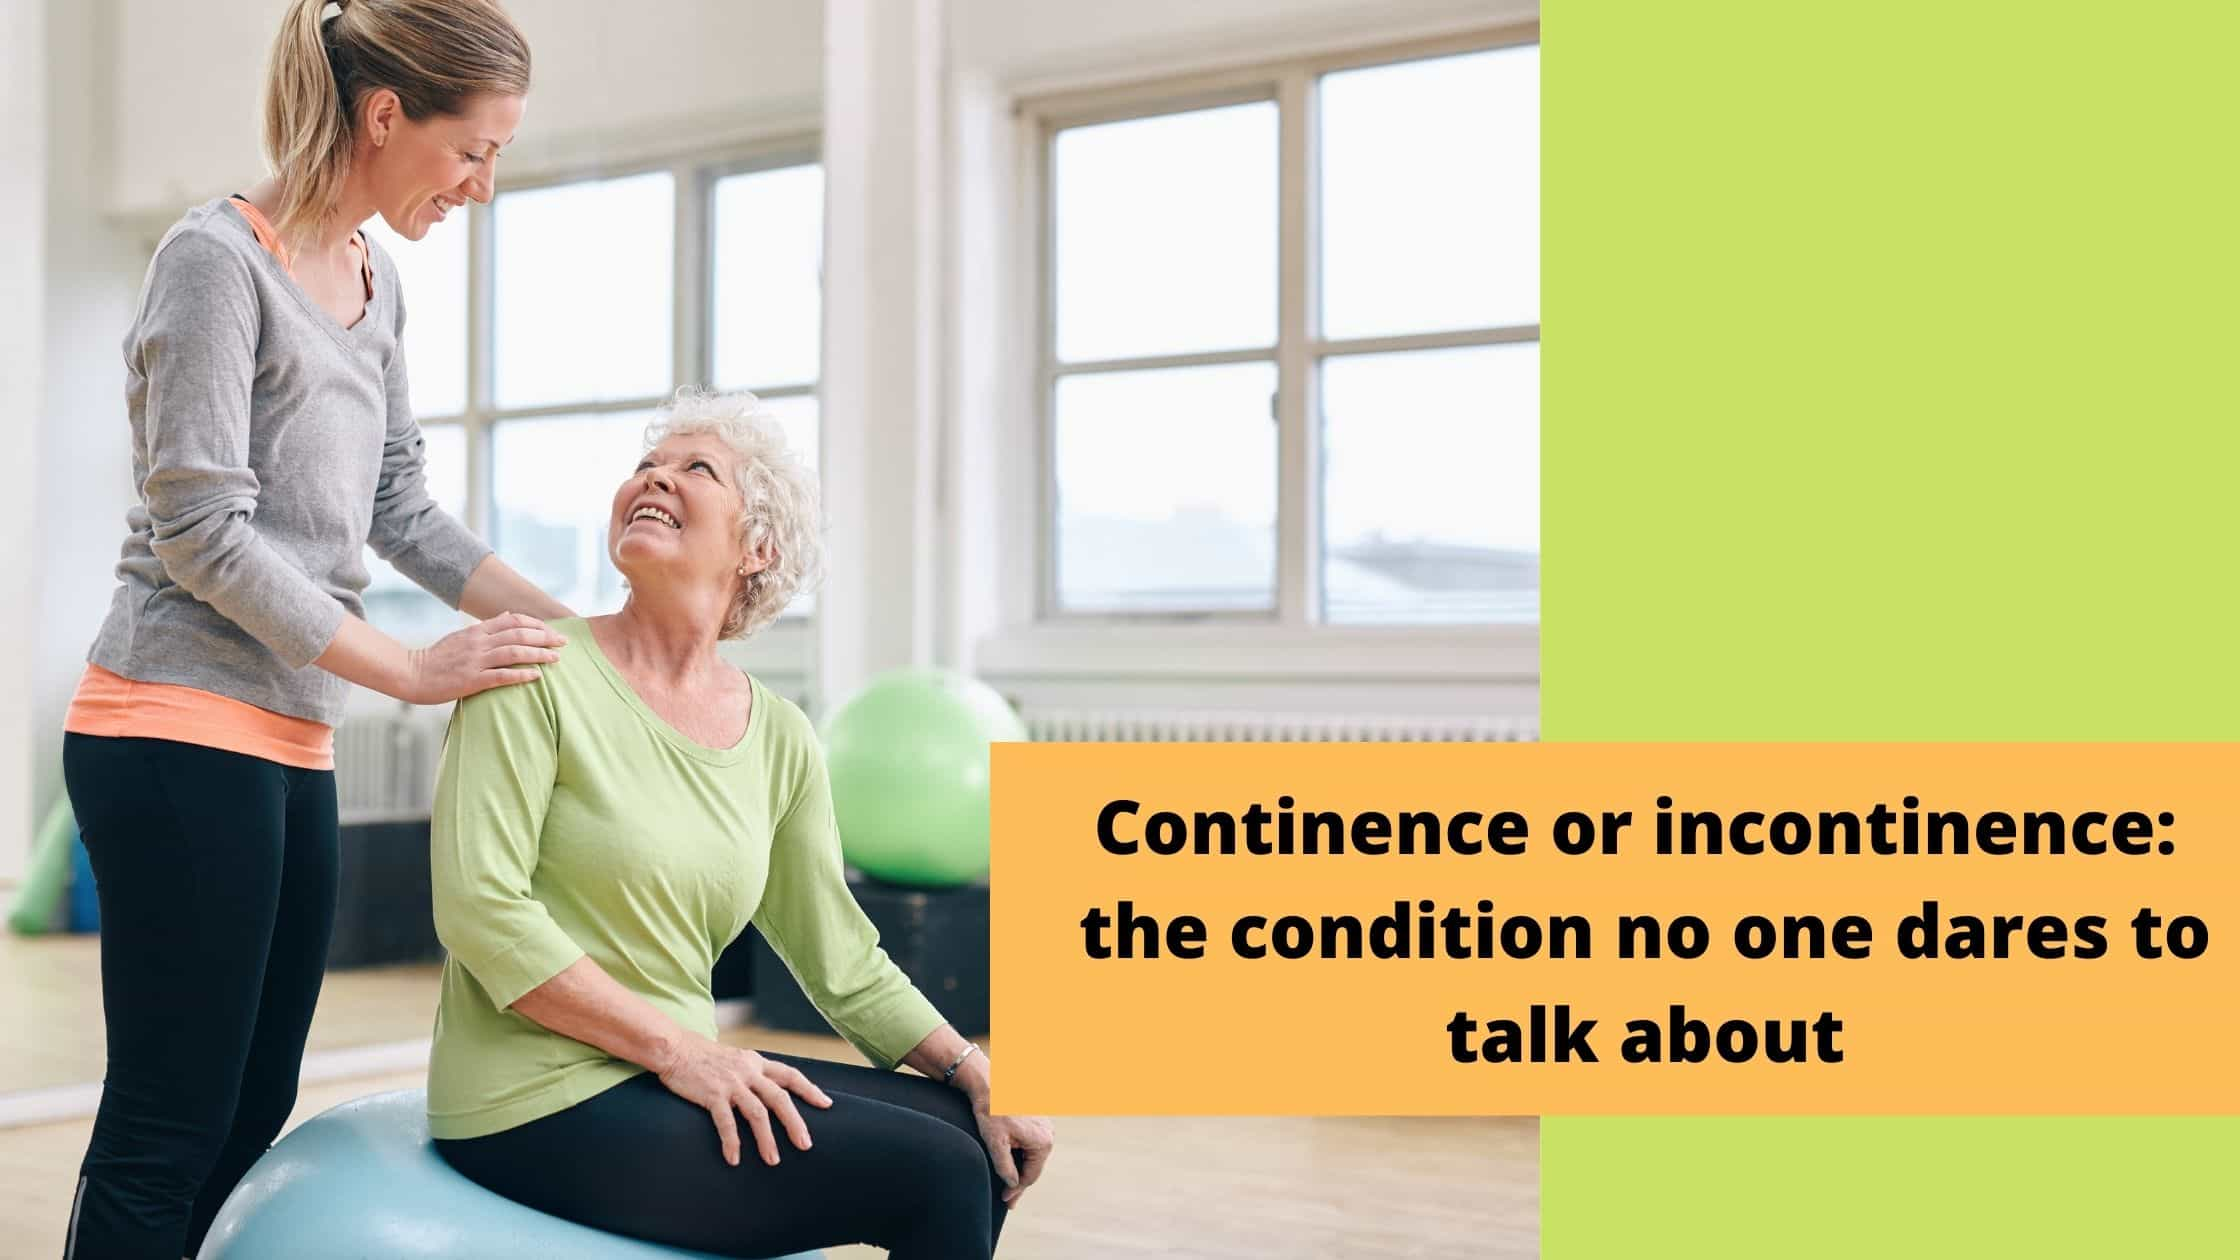 Continence or incontinence: the condition no one dares to talk about